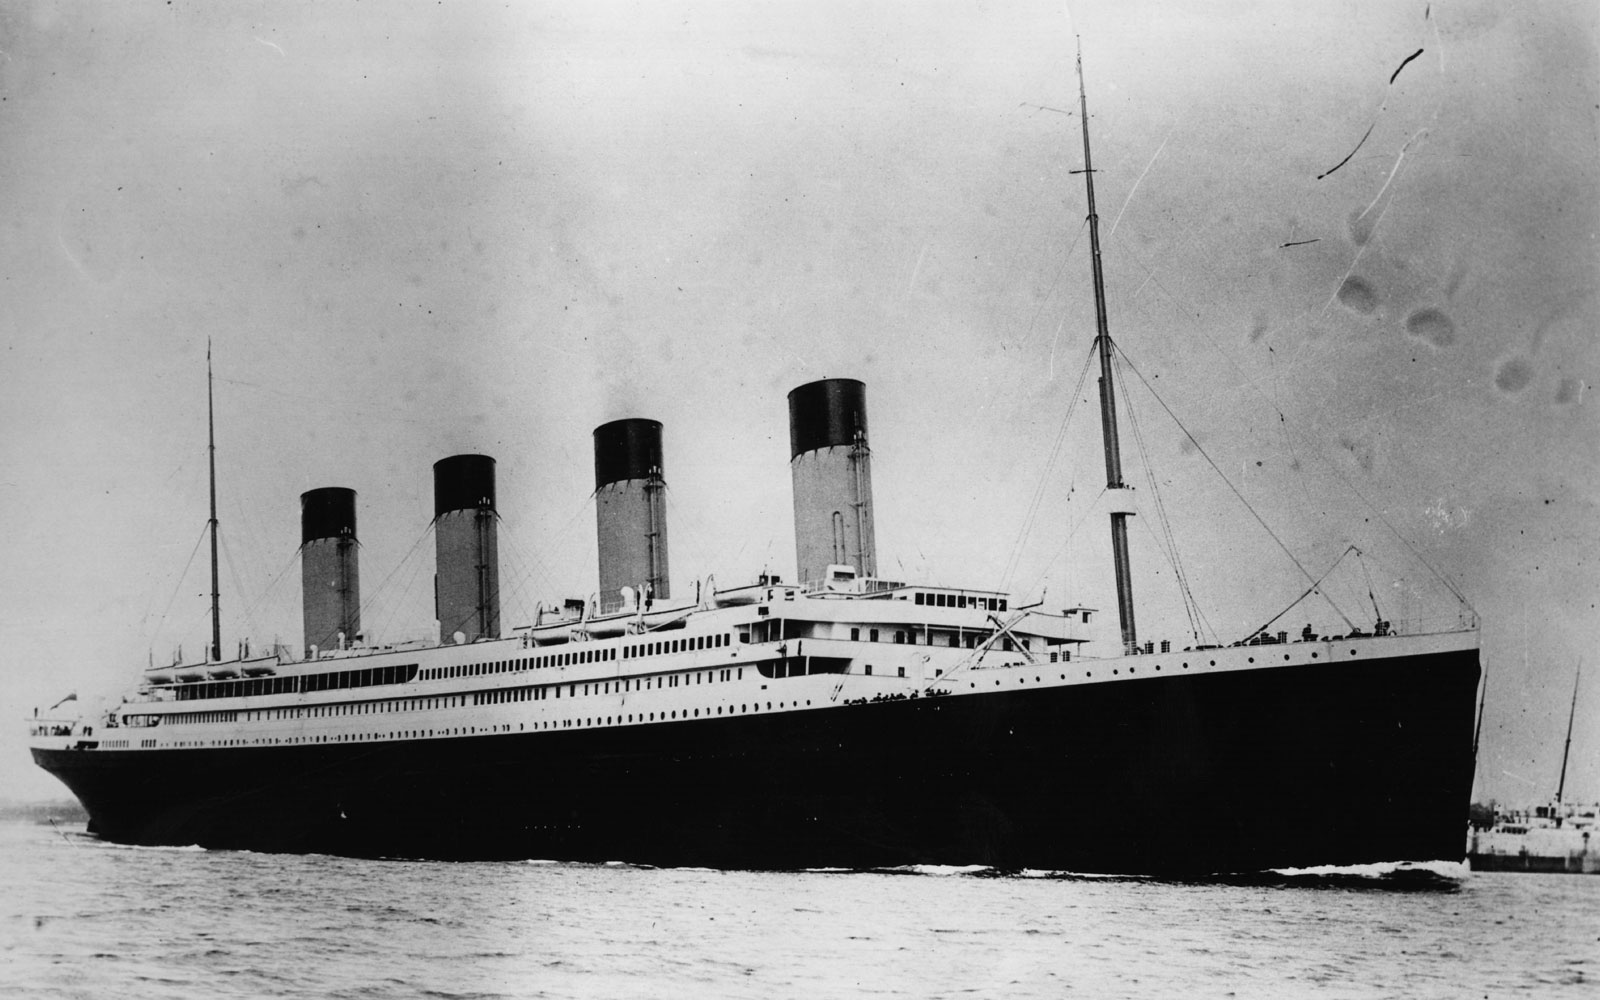 Live Out Your Titanic Nightmares On a Full Size Replica of the Ship—That Actually Sinks